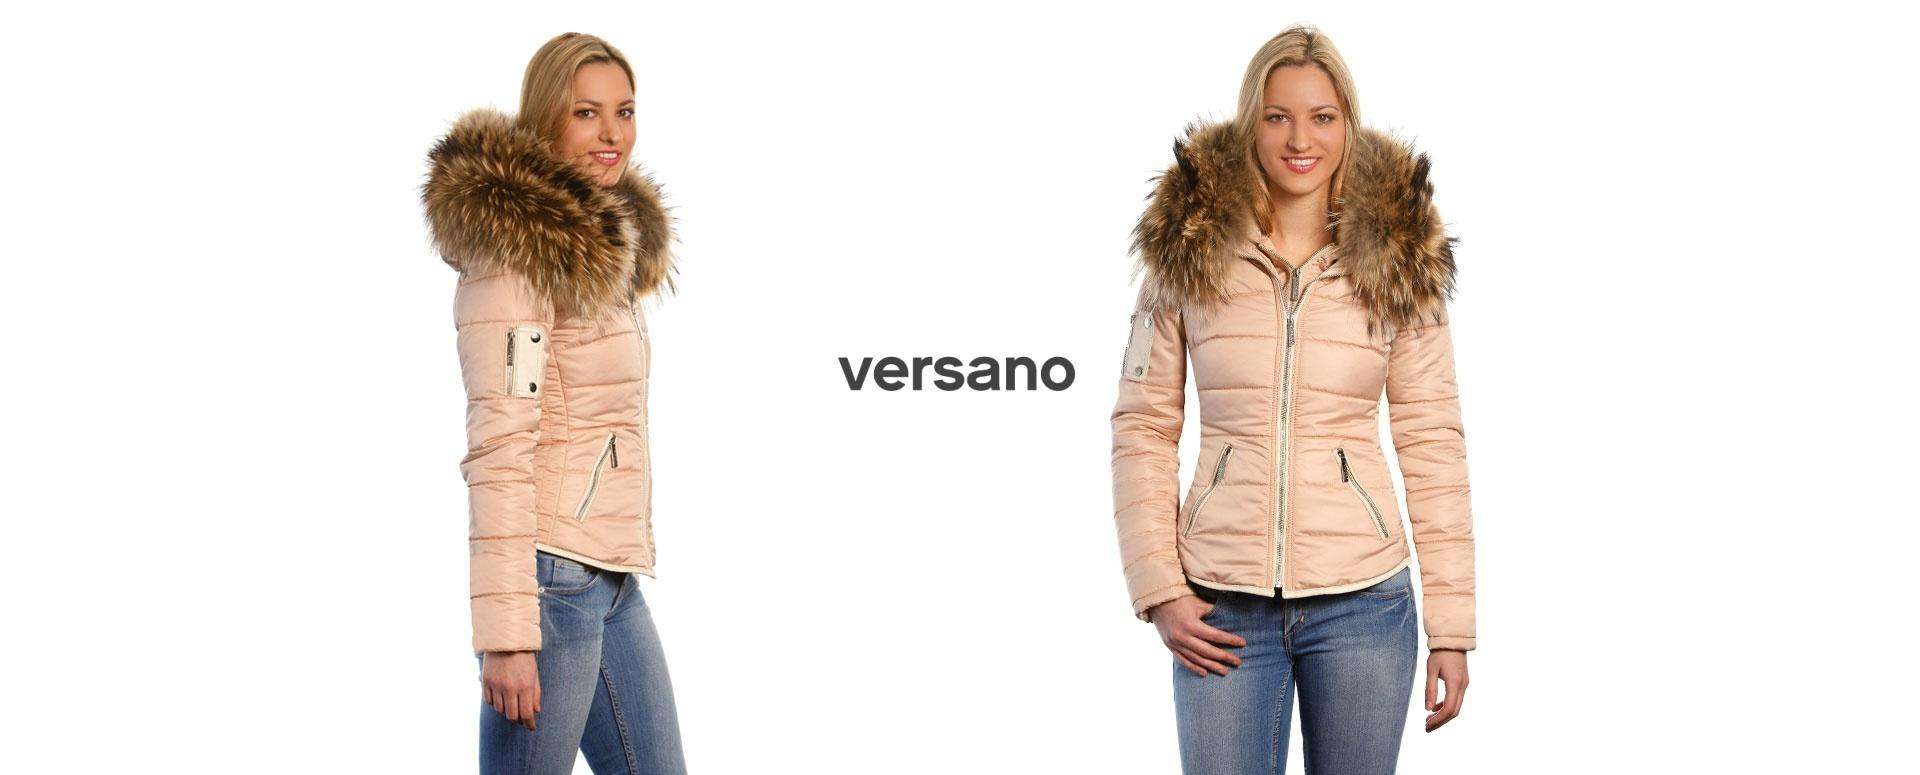 winterjas-met-bontkraag-rose-versano-leather-shop-doci